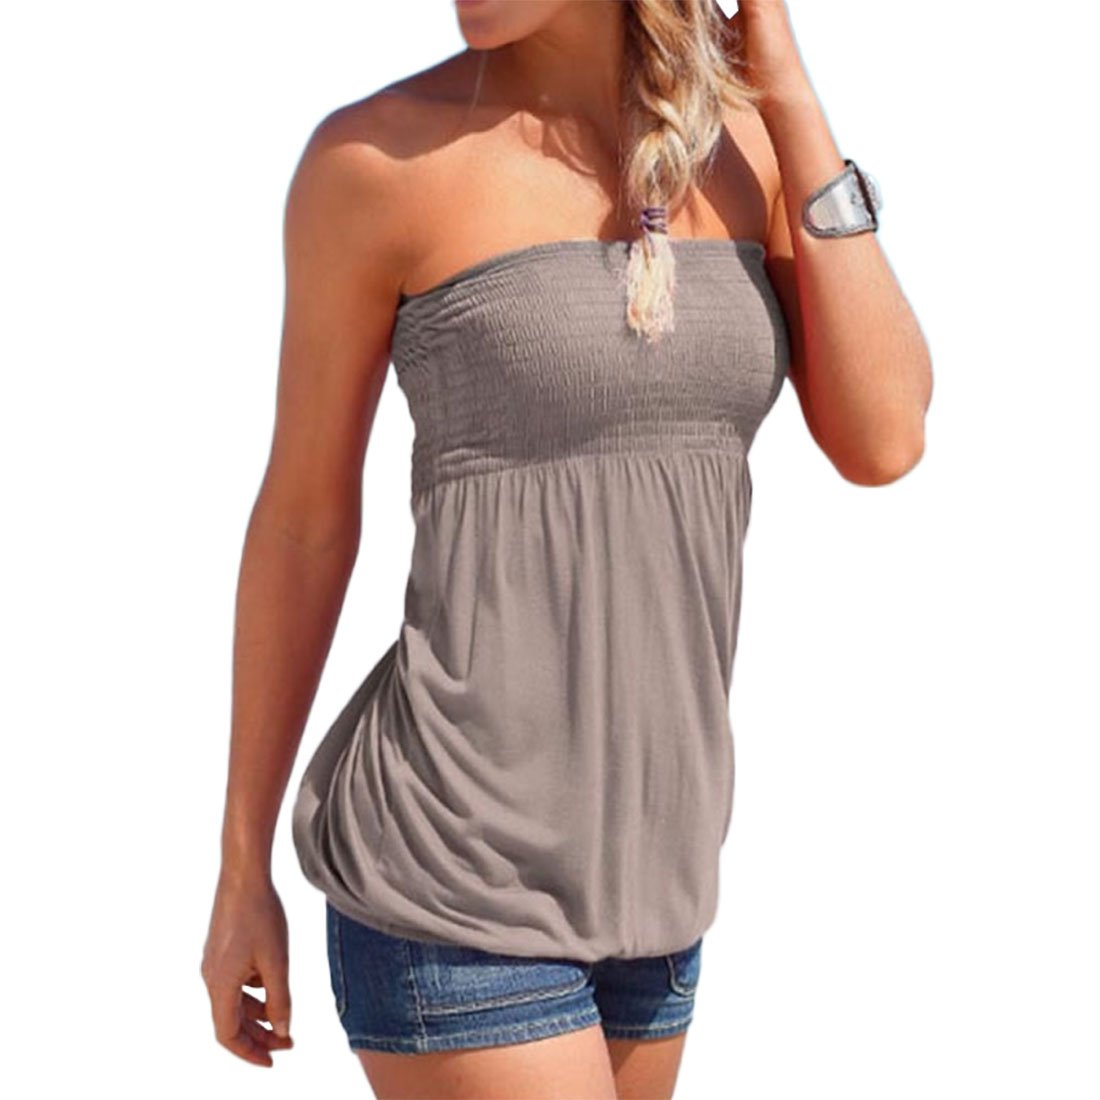 Shilanmei Women Sleeveless Tube Top Strapless Blouse Pleated Tunic Tanks Tops (Gray,M)